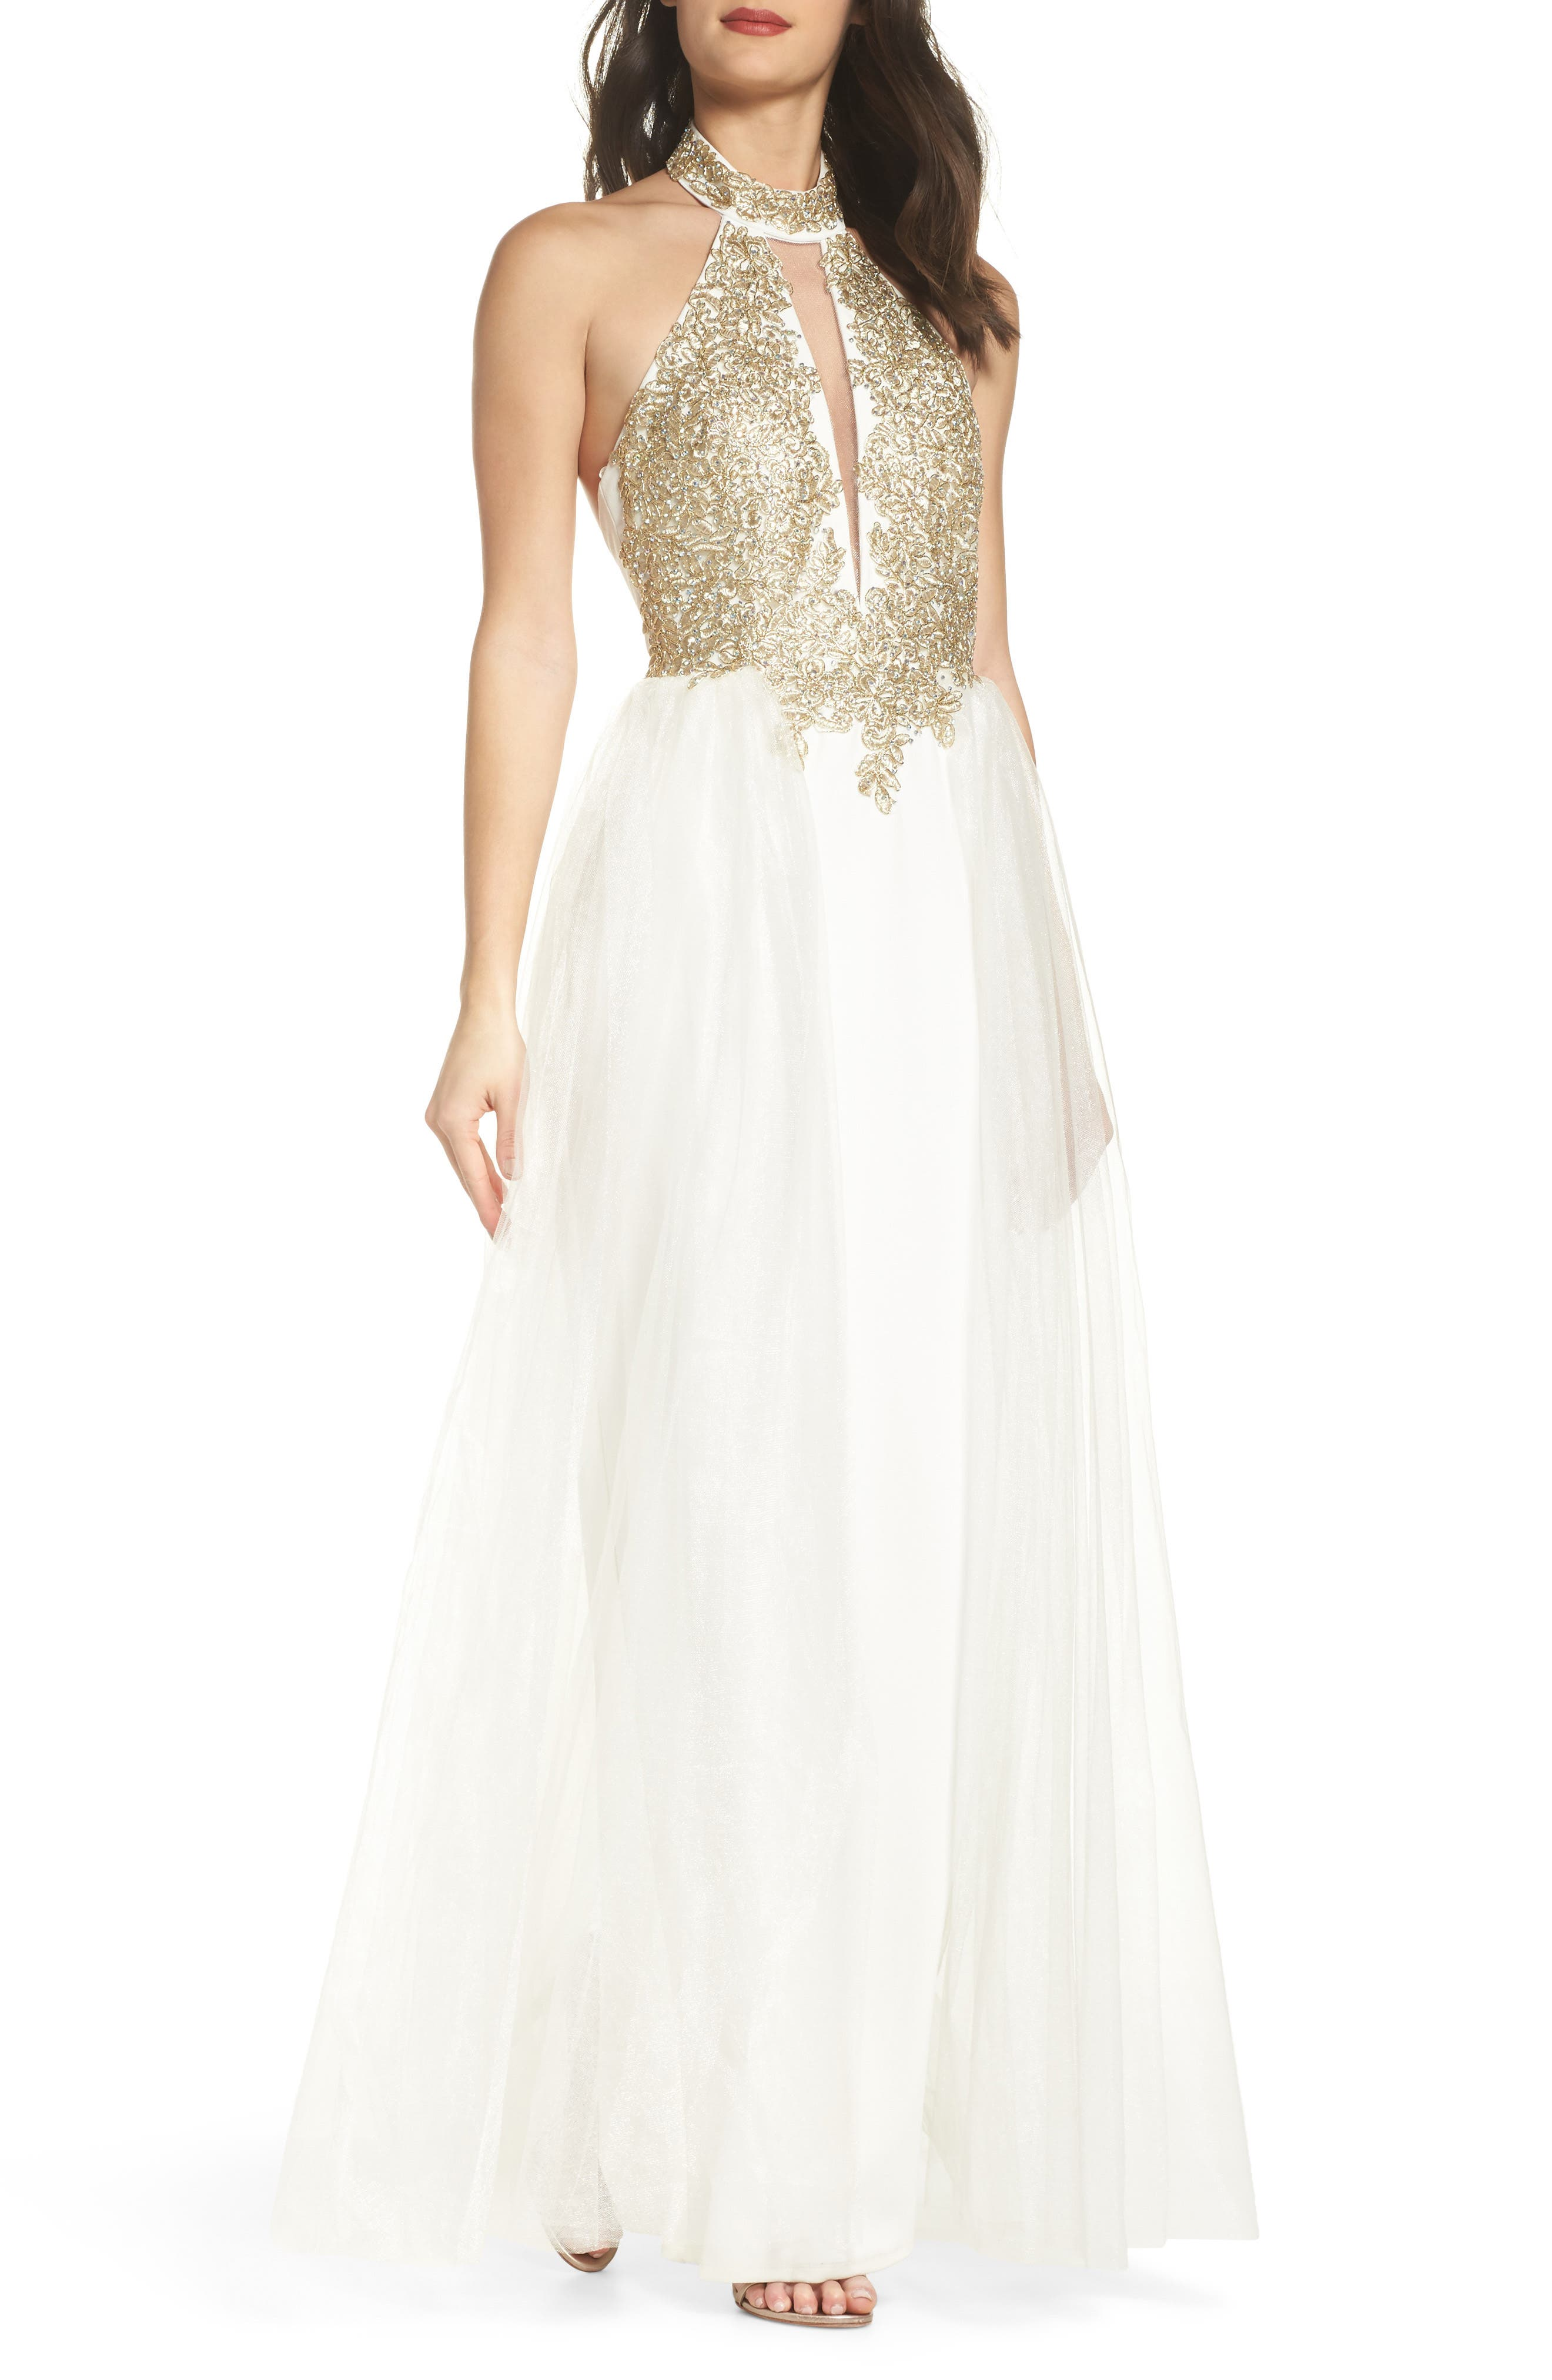 Main Image - Sequin Hearts Embellished Halter Gown with Tulle Overskirt